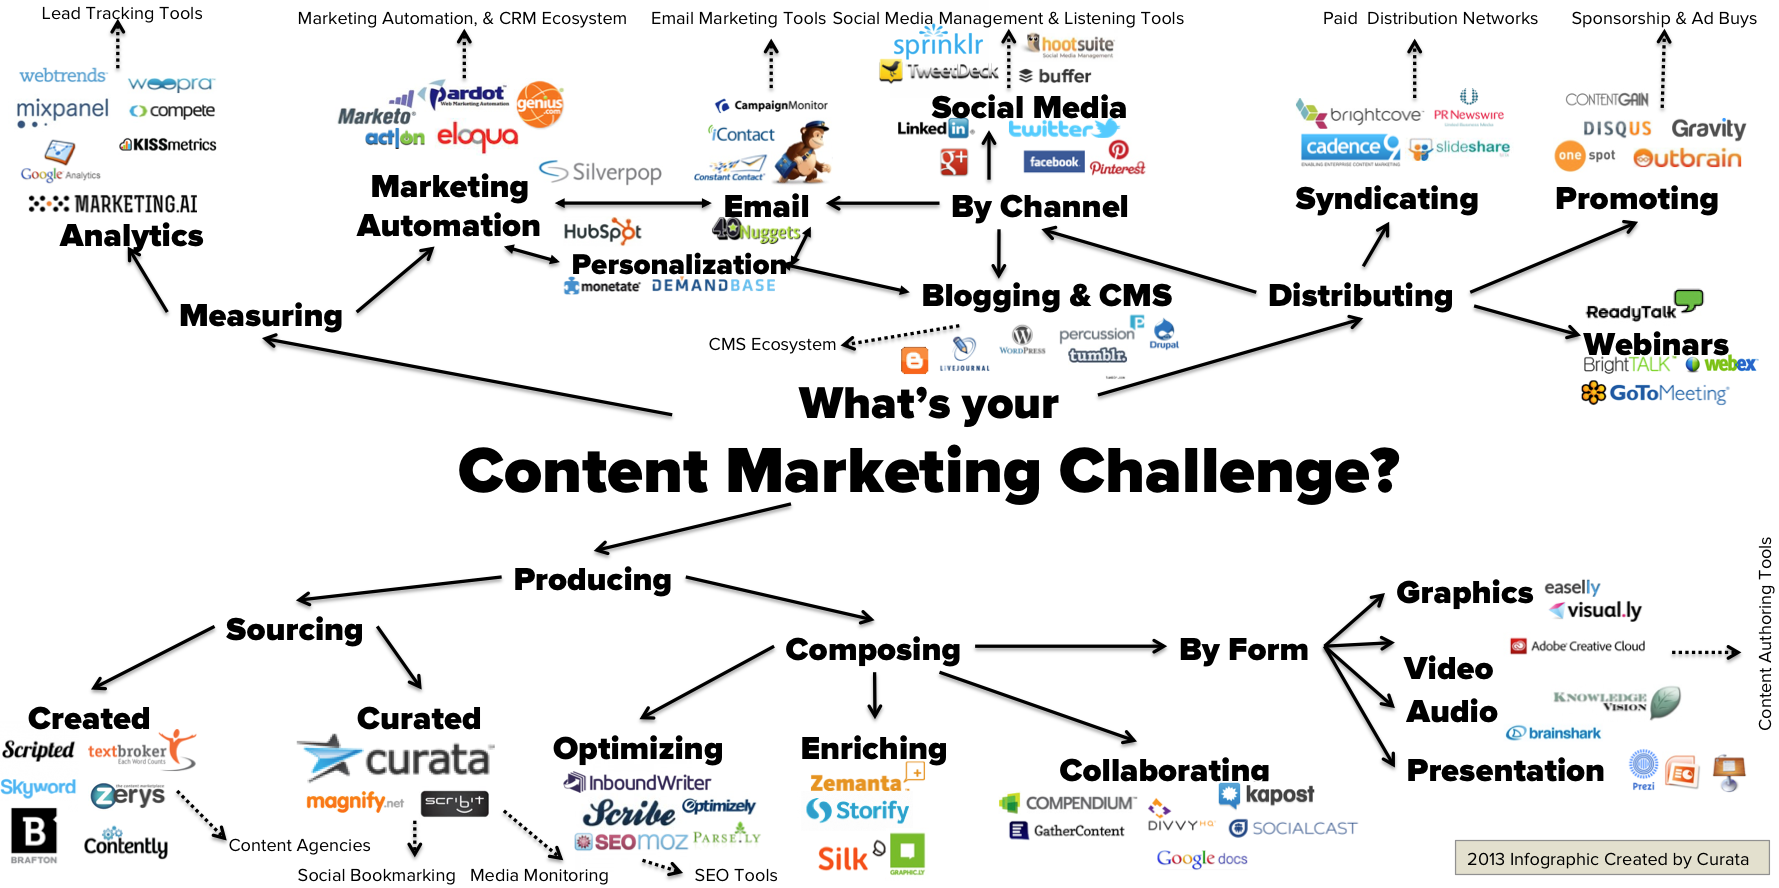 Content Marketing Trends Your Business Should Implement